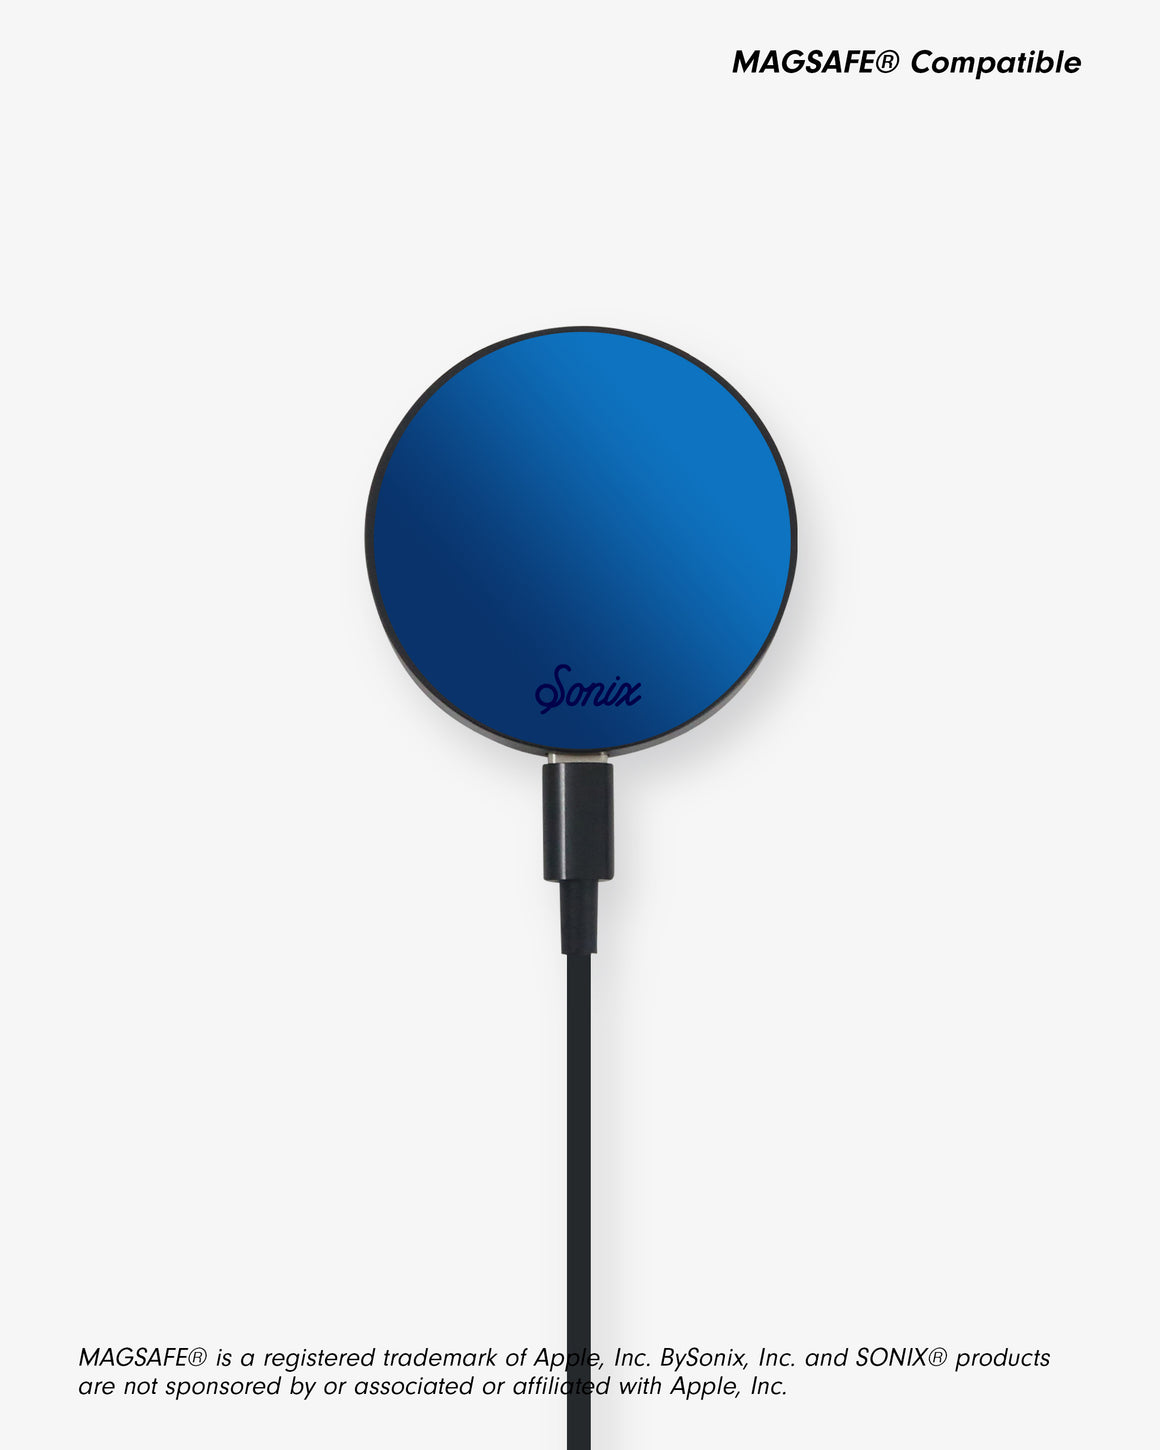 Magnetic Link™, Wireless Charger Pacific Blue